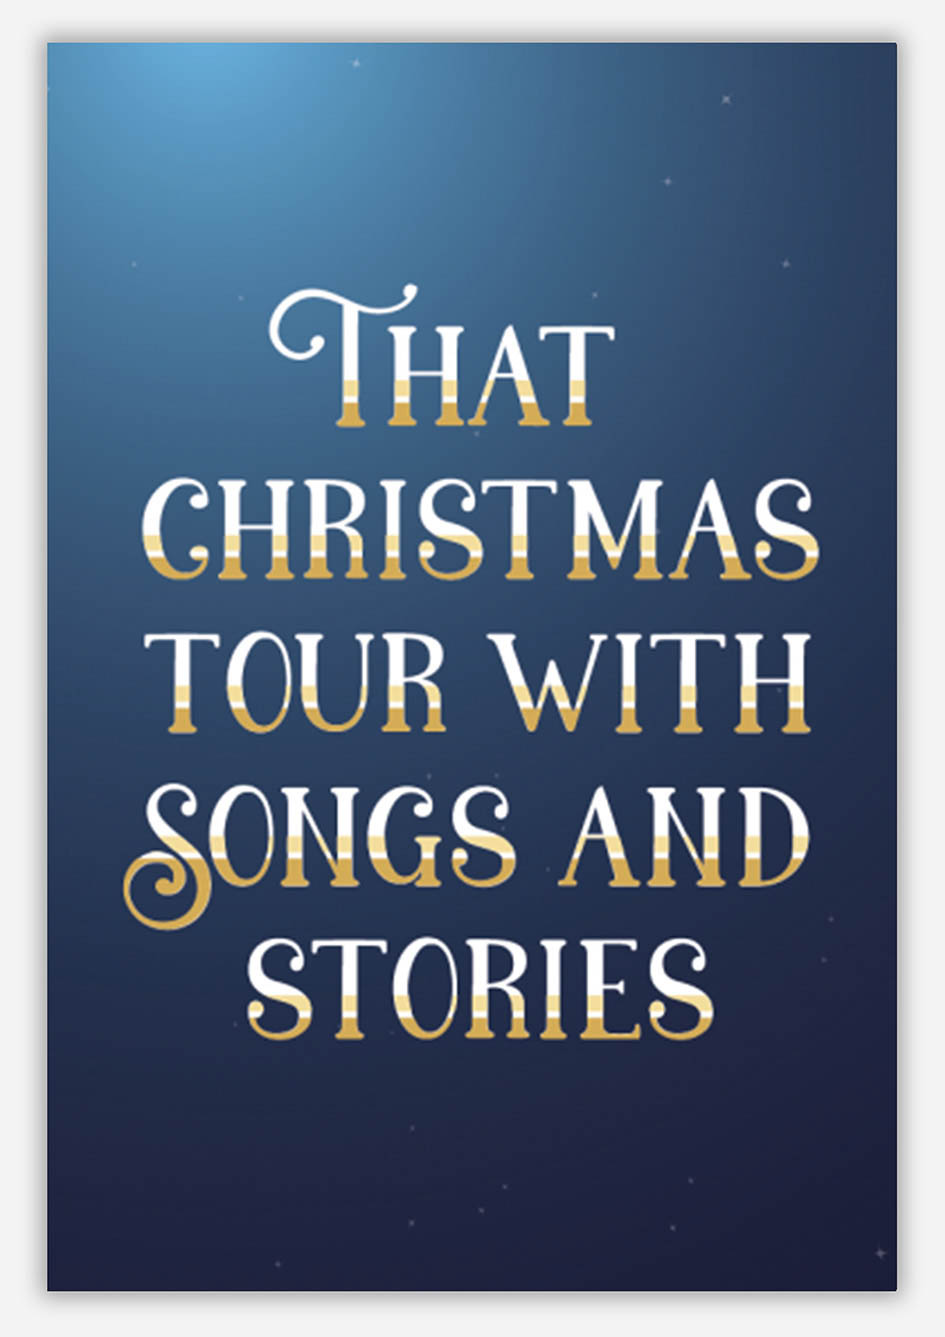 That Christmas tour with songs and stories - Caerphilly Golf Club